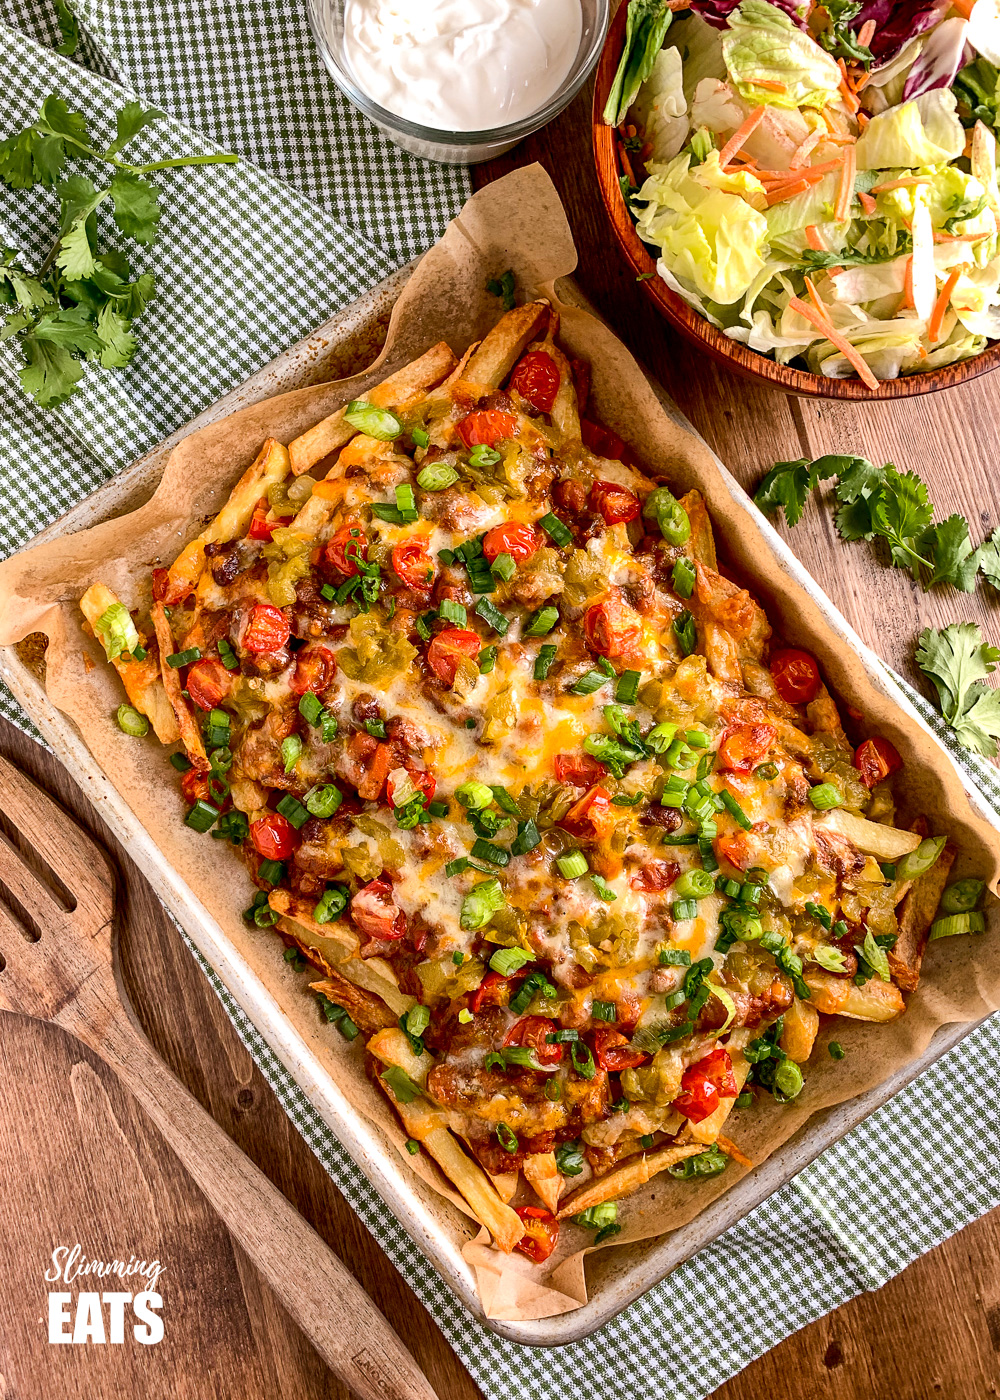 Layered Chilli Cheese Fries on baking tray with salad and soured cream on wooden board with scatter cilatntro